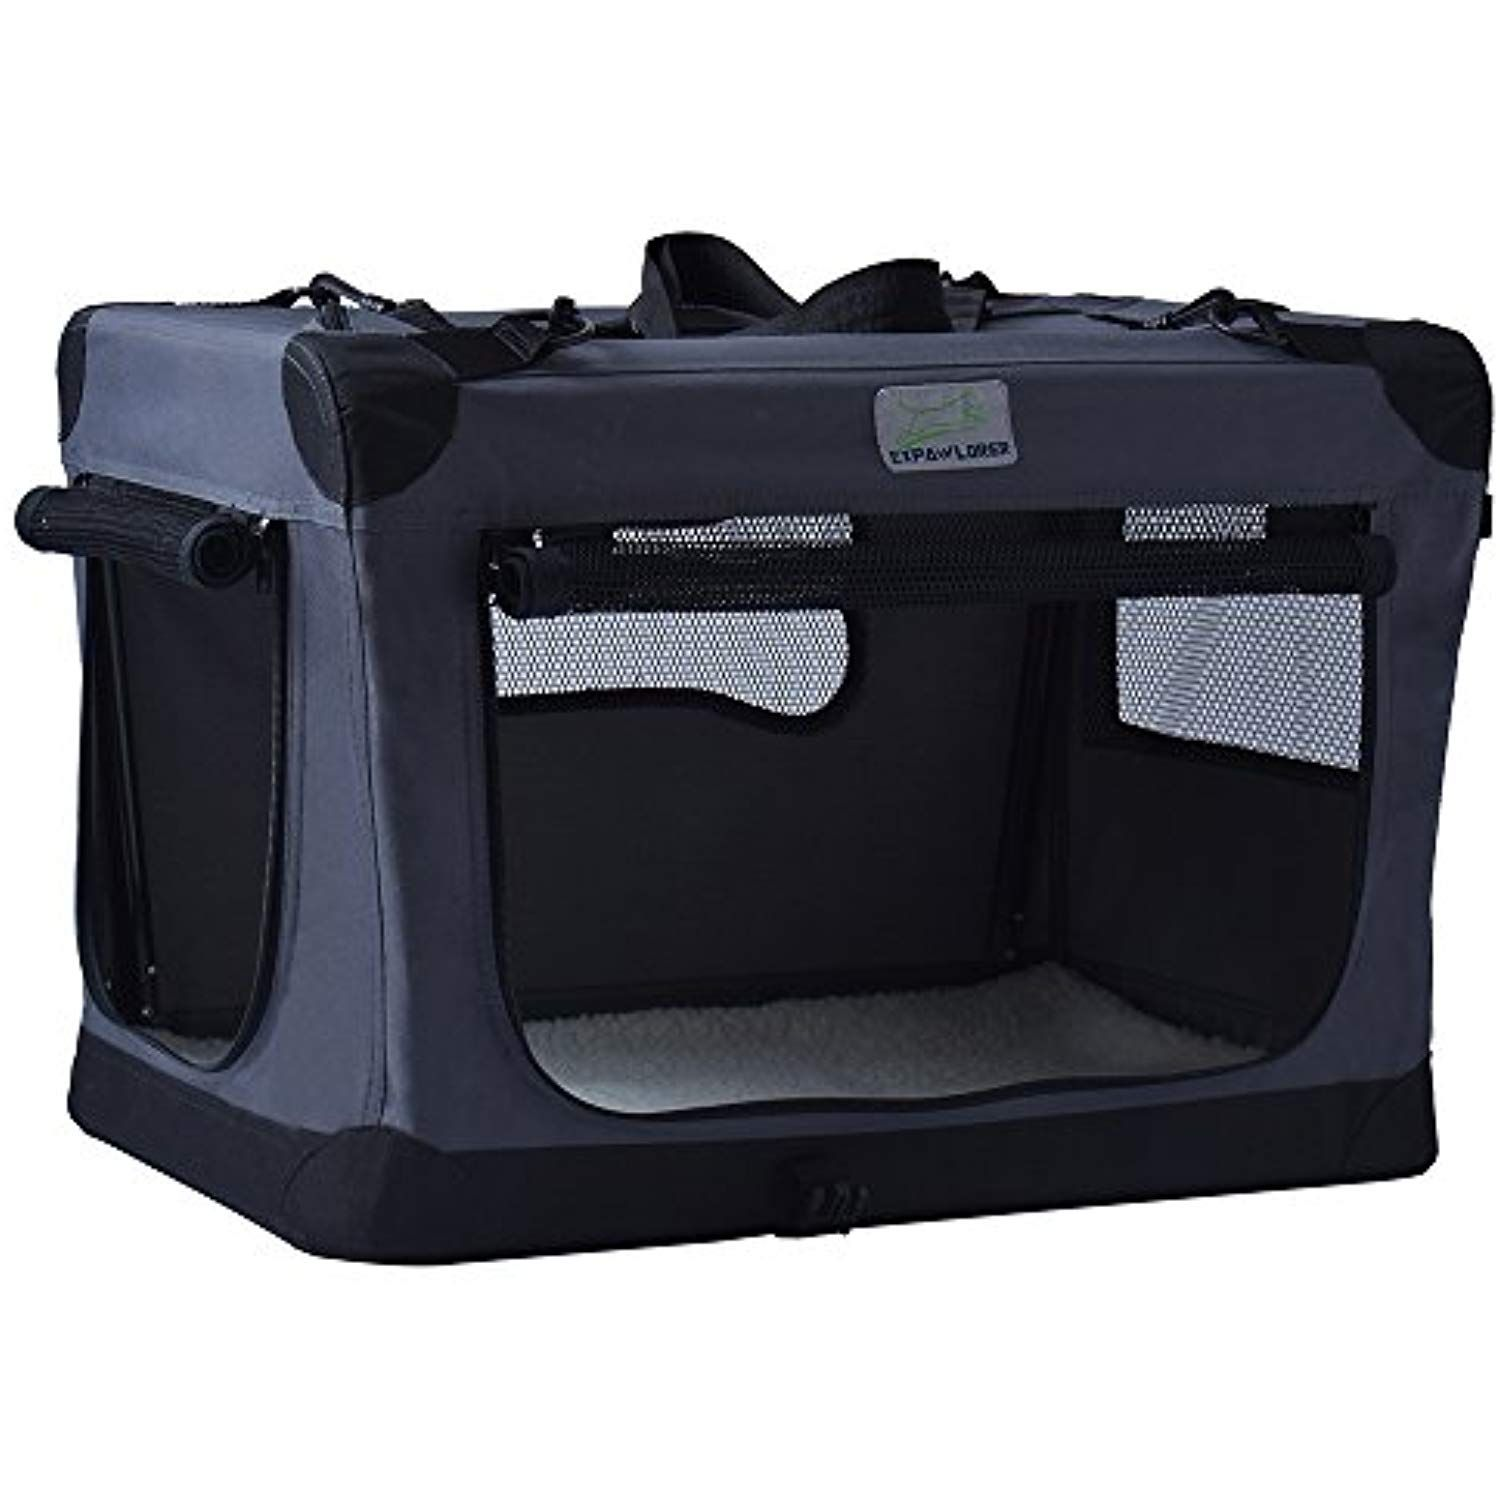 Expawlorer Collapsible Foldable Dog Crate Indoor Dogs Foldable Dog Crate Dog Crate Crates